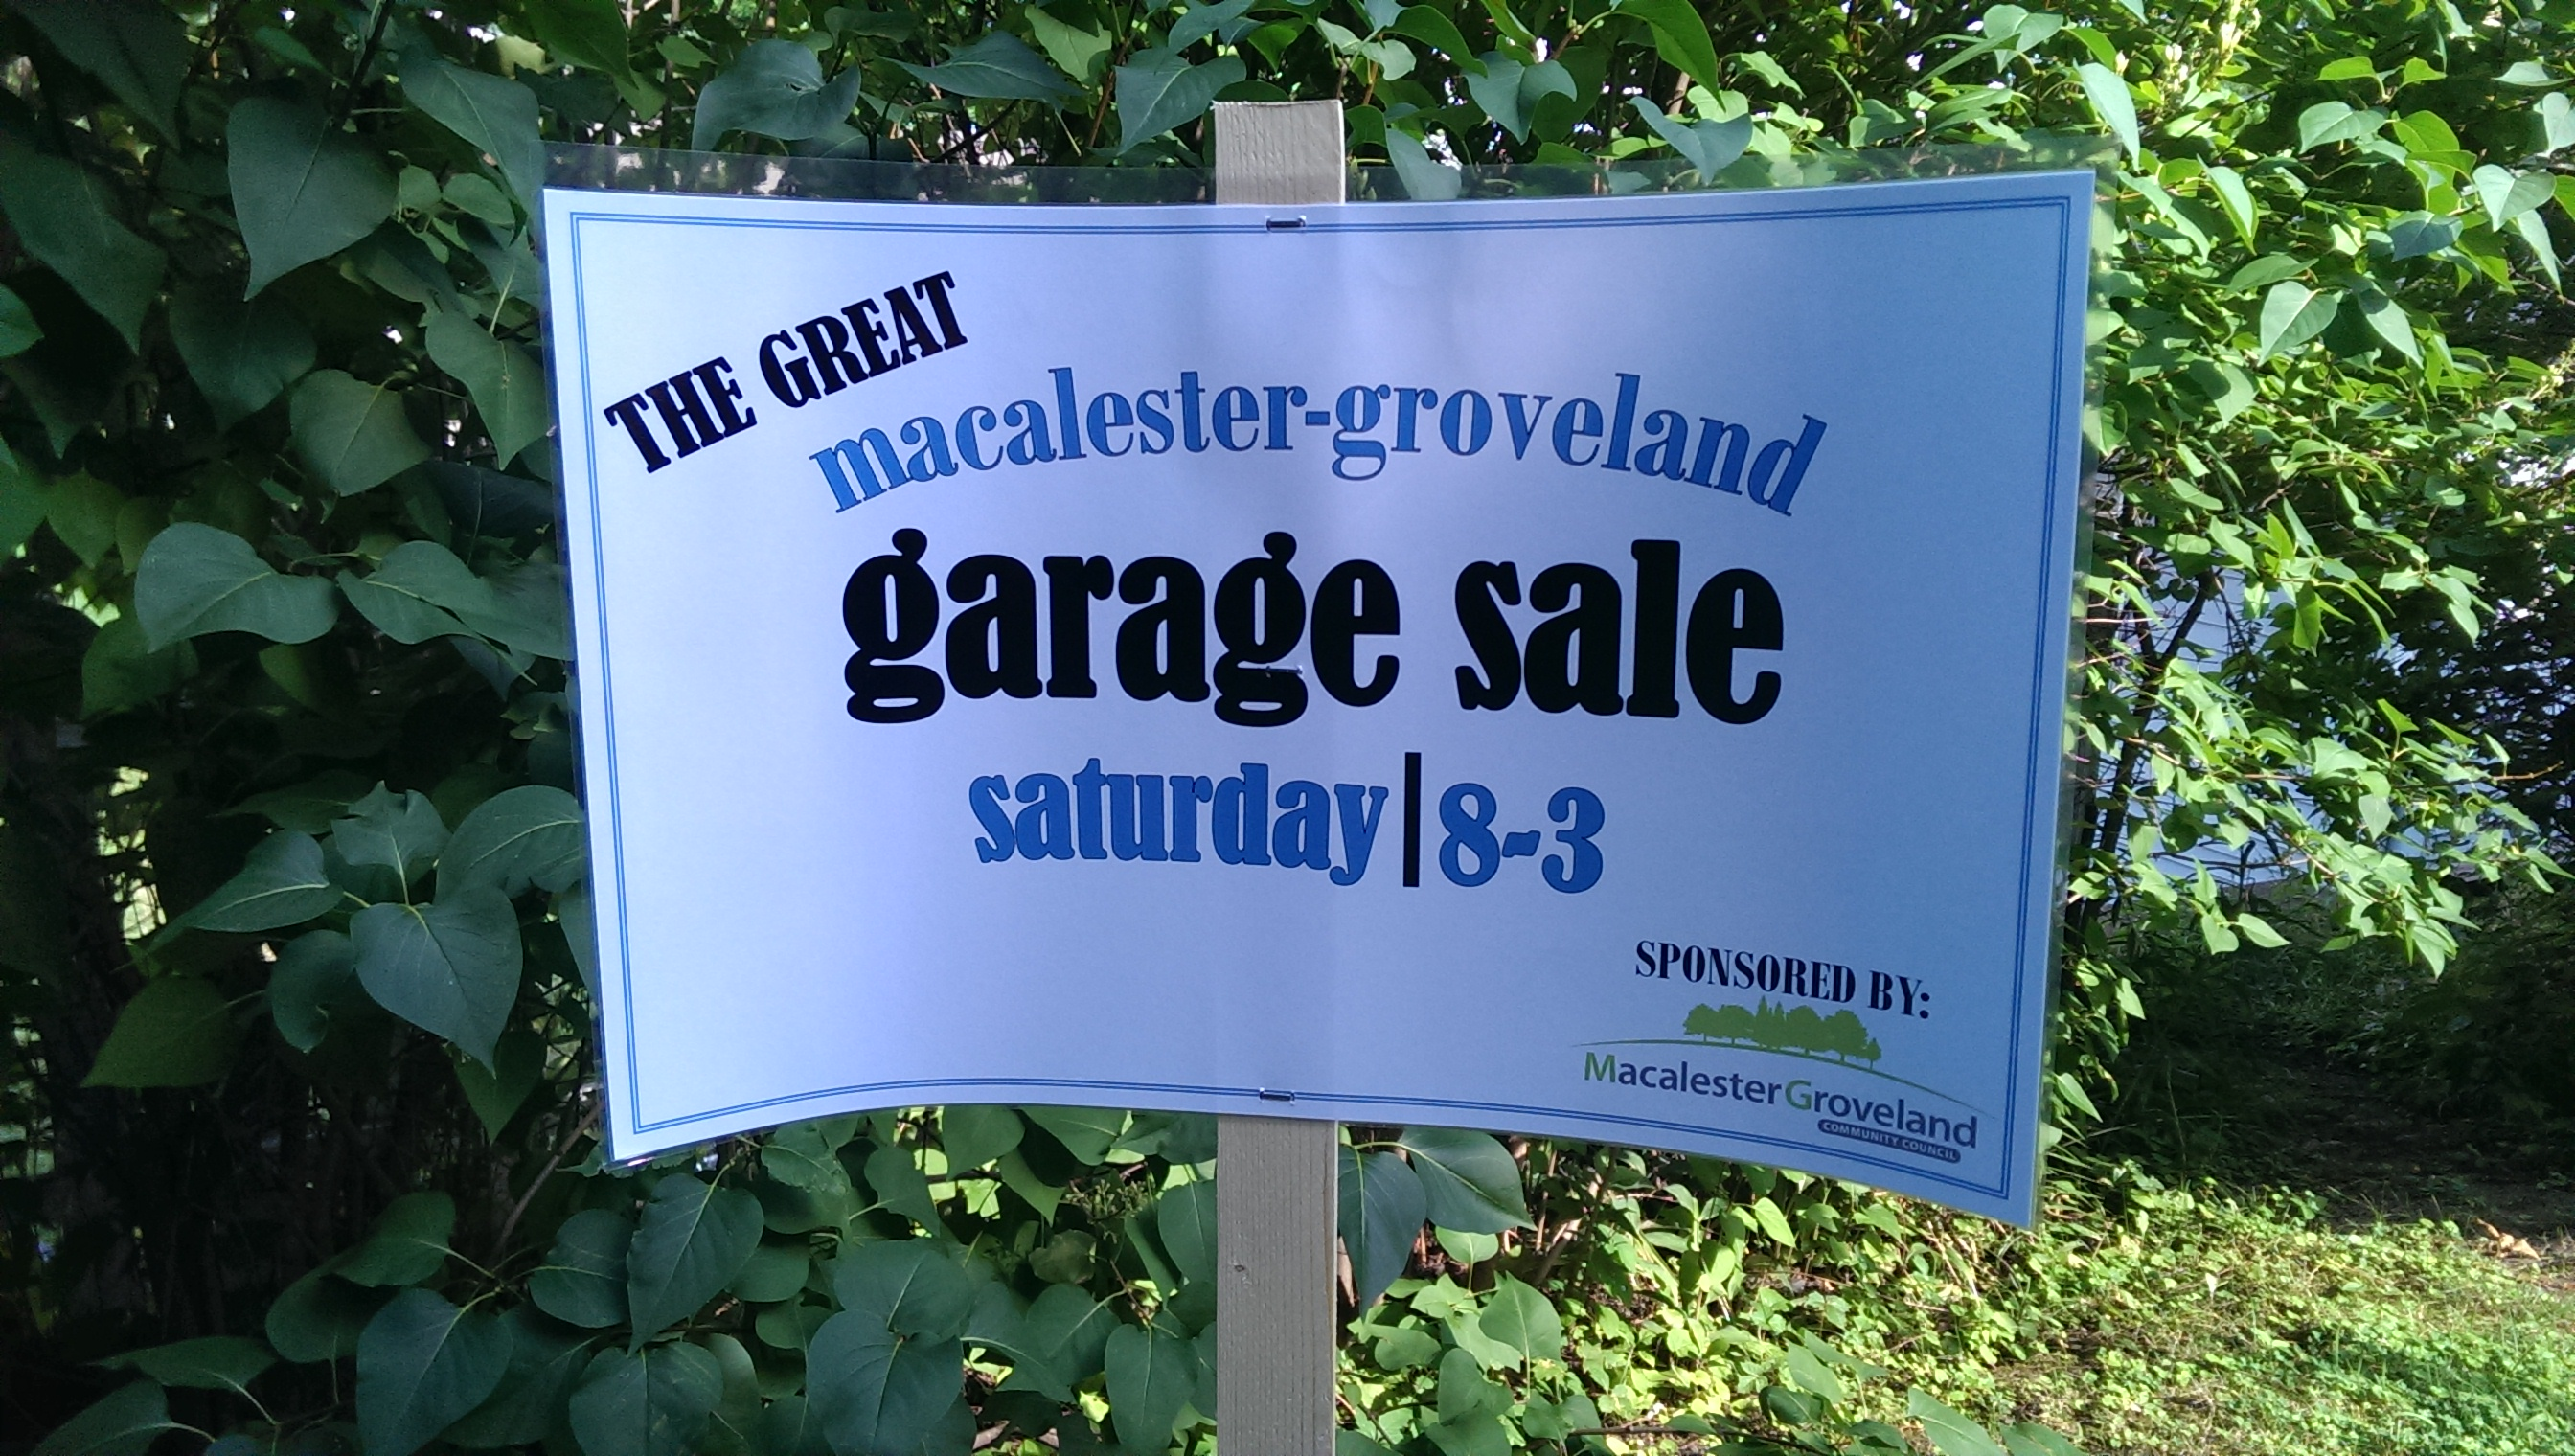 Garage Sale - Macalester-Groveland Community Council